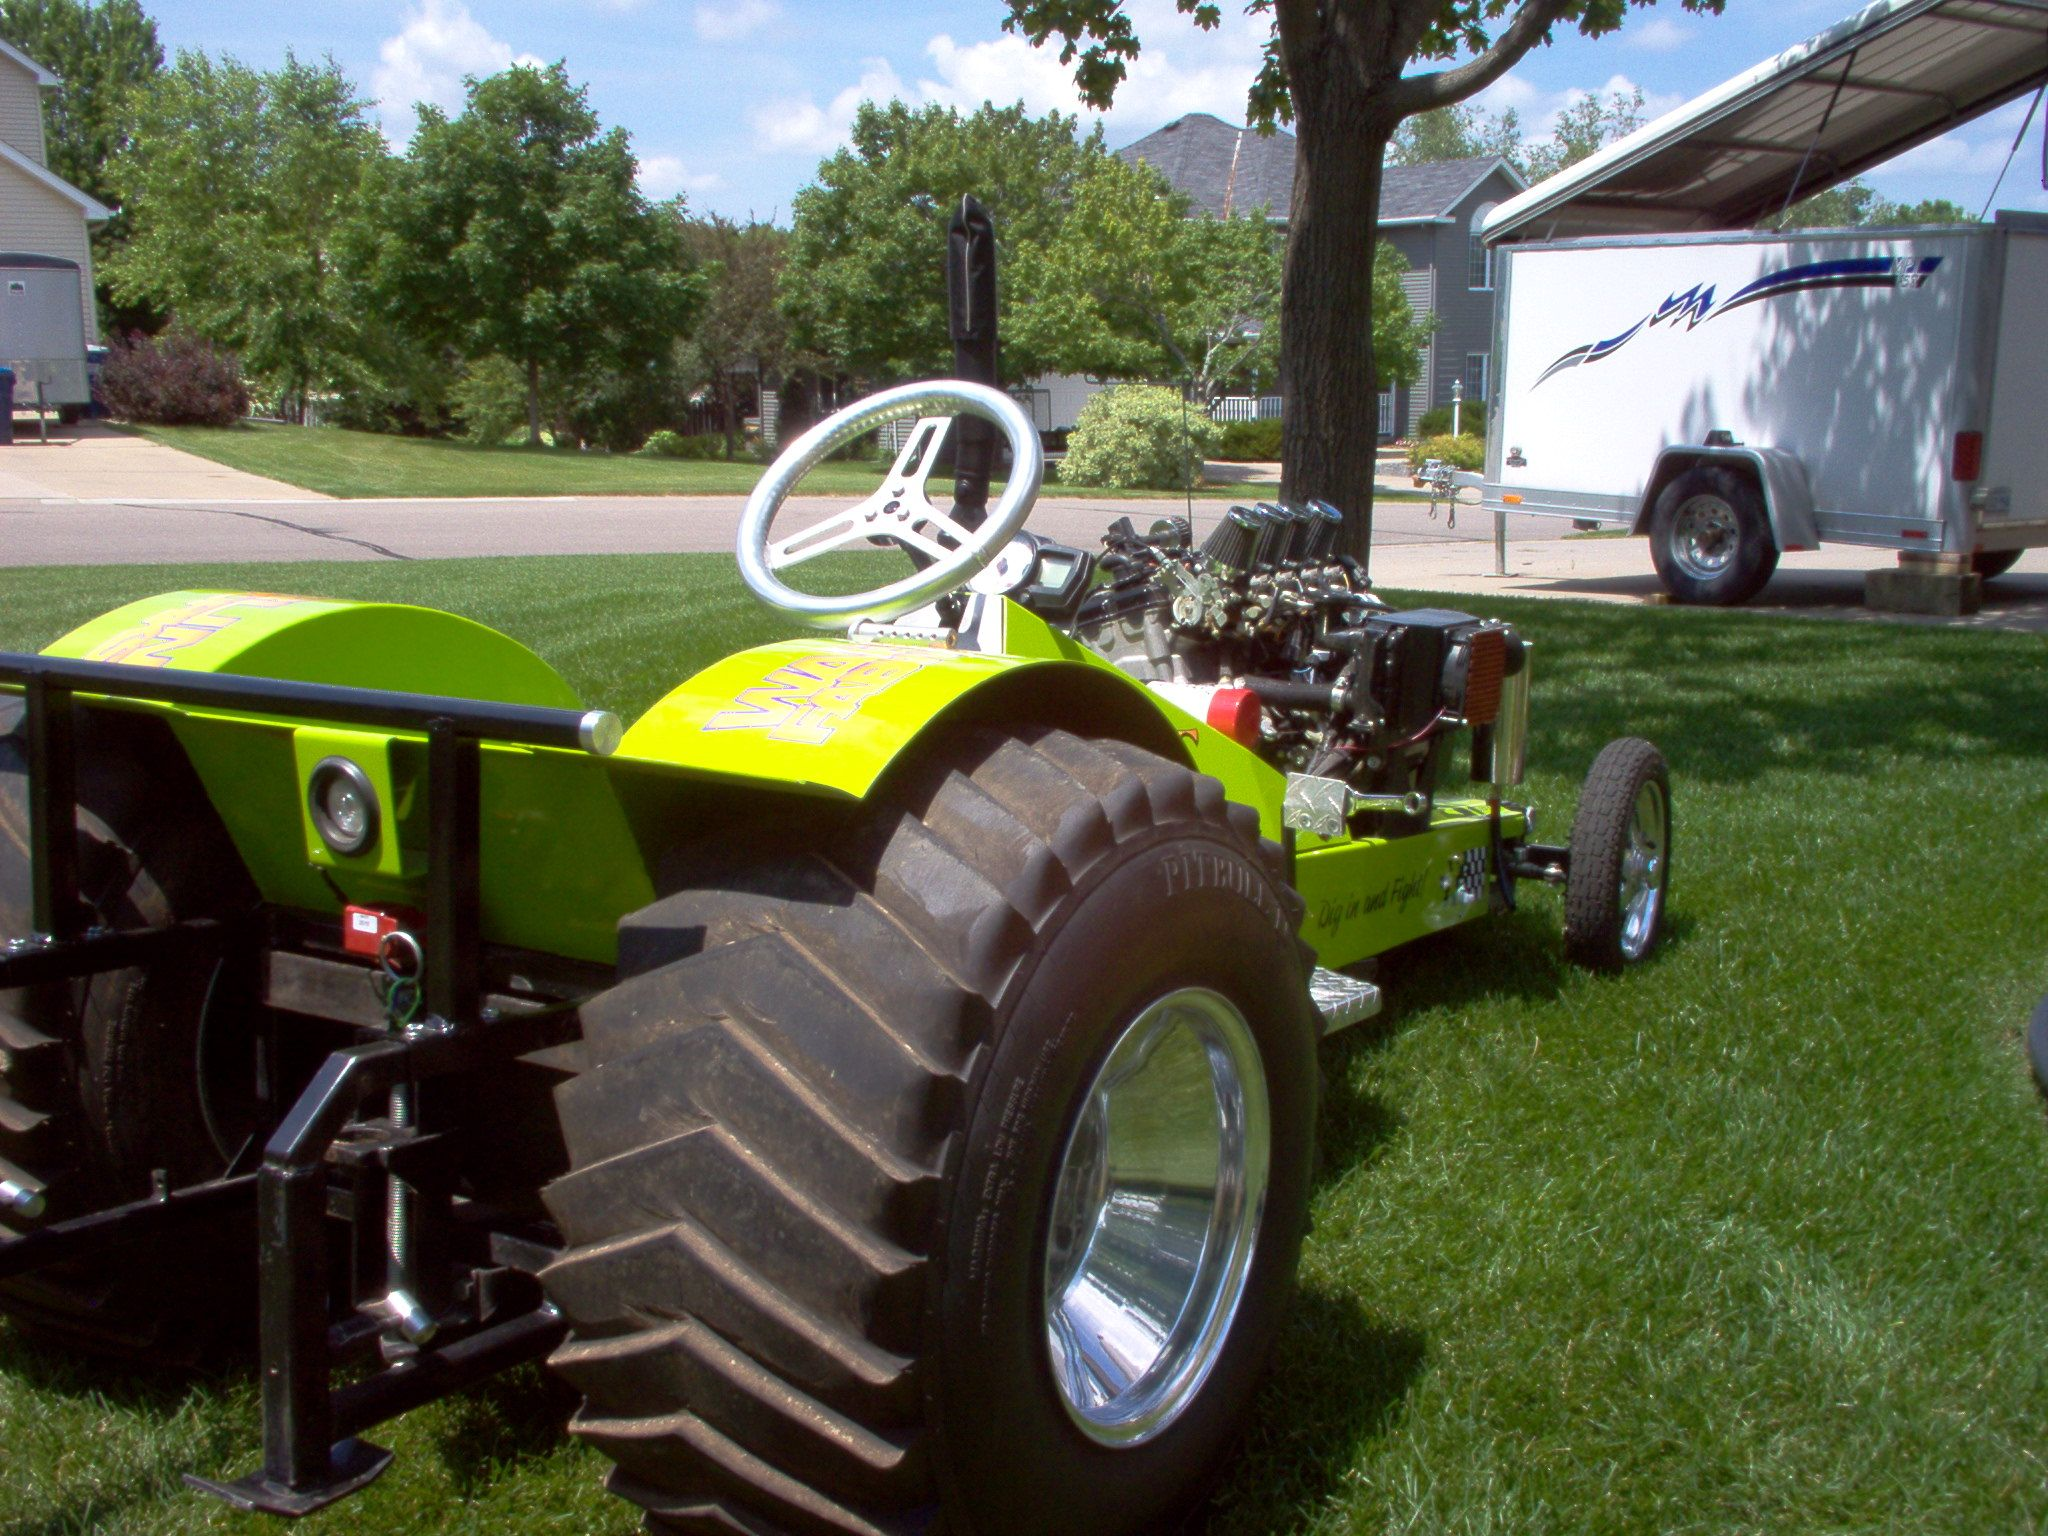 Super Modified Garden Pulling Tractor powered by a 126 H P  Suzuki